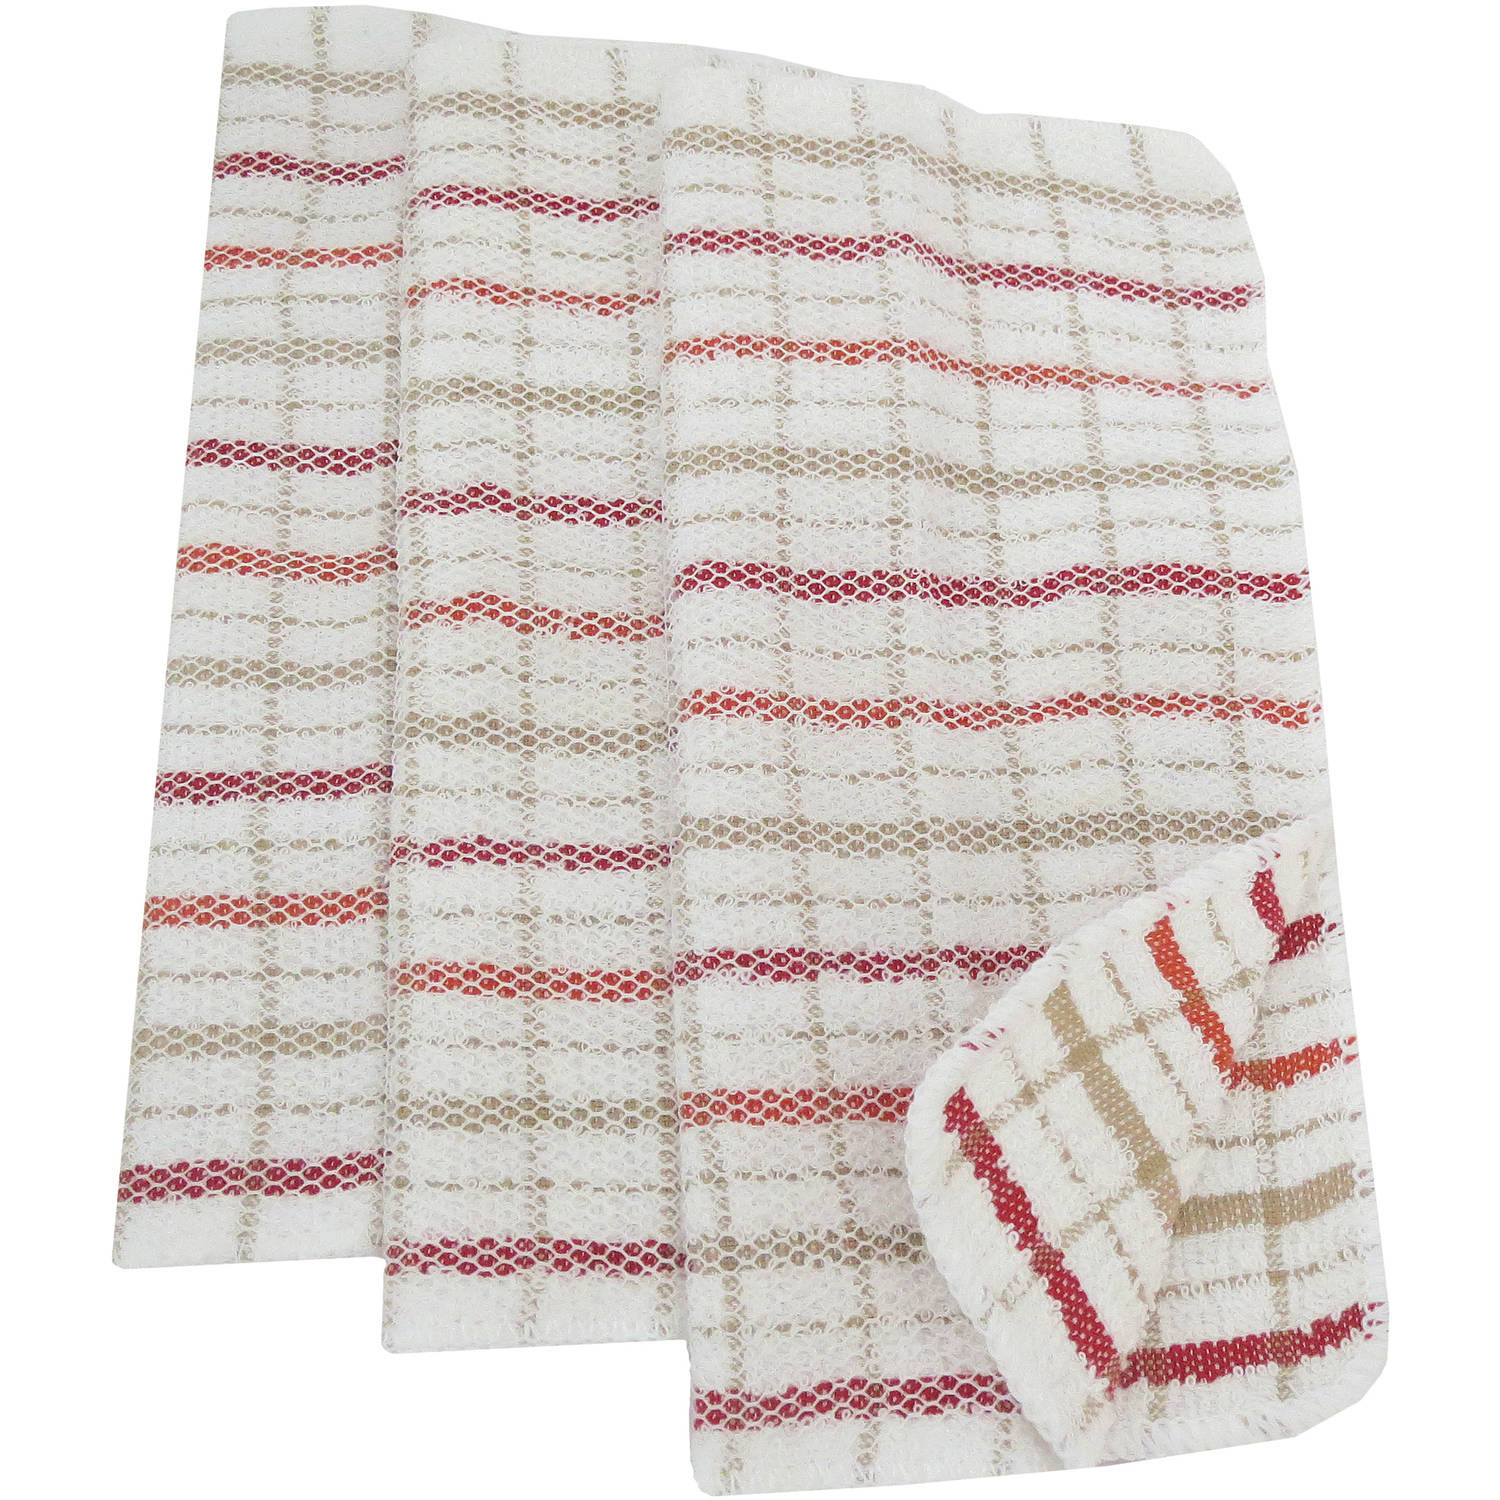 Mainstays Dish Cloth 3 Pack Scrubber